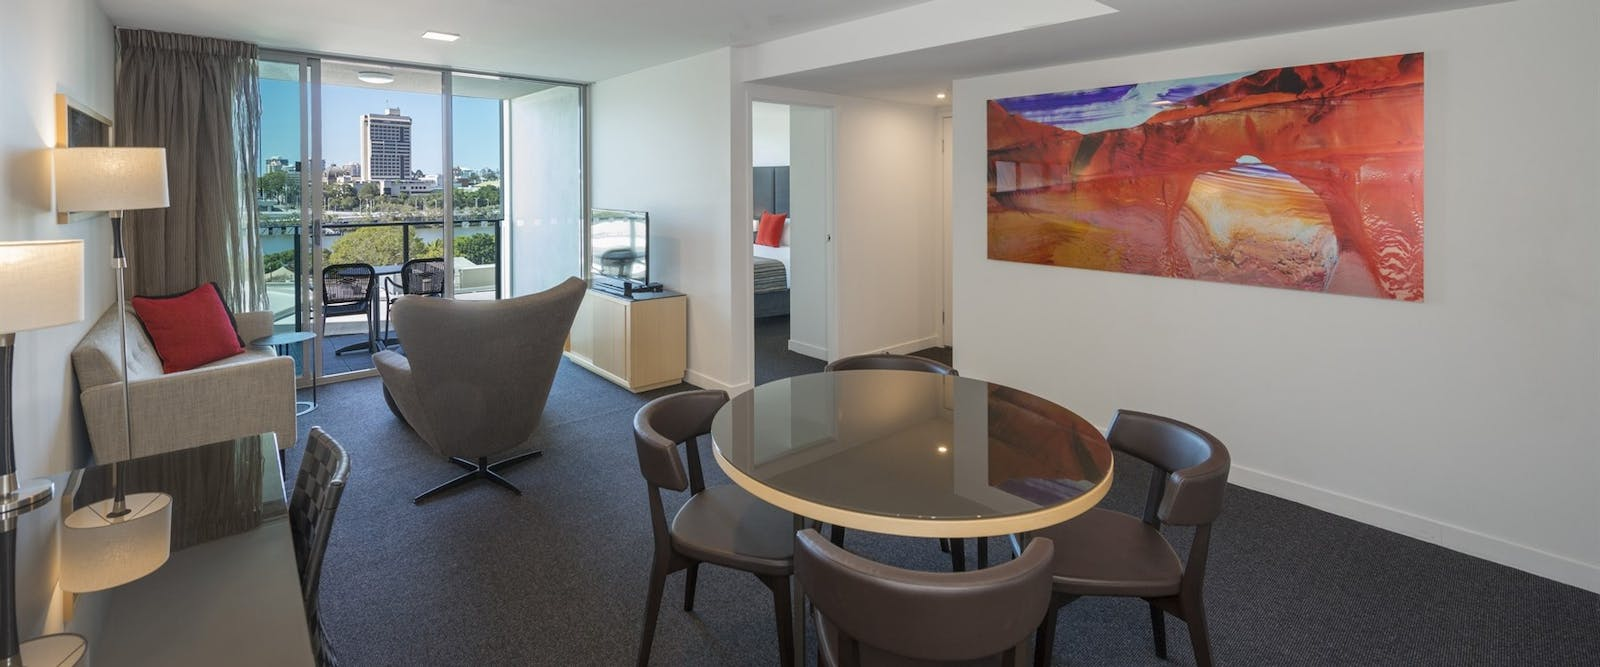 1 bedroom city view at Mantra Southbank Brisbane